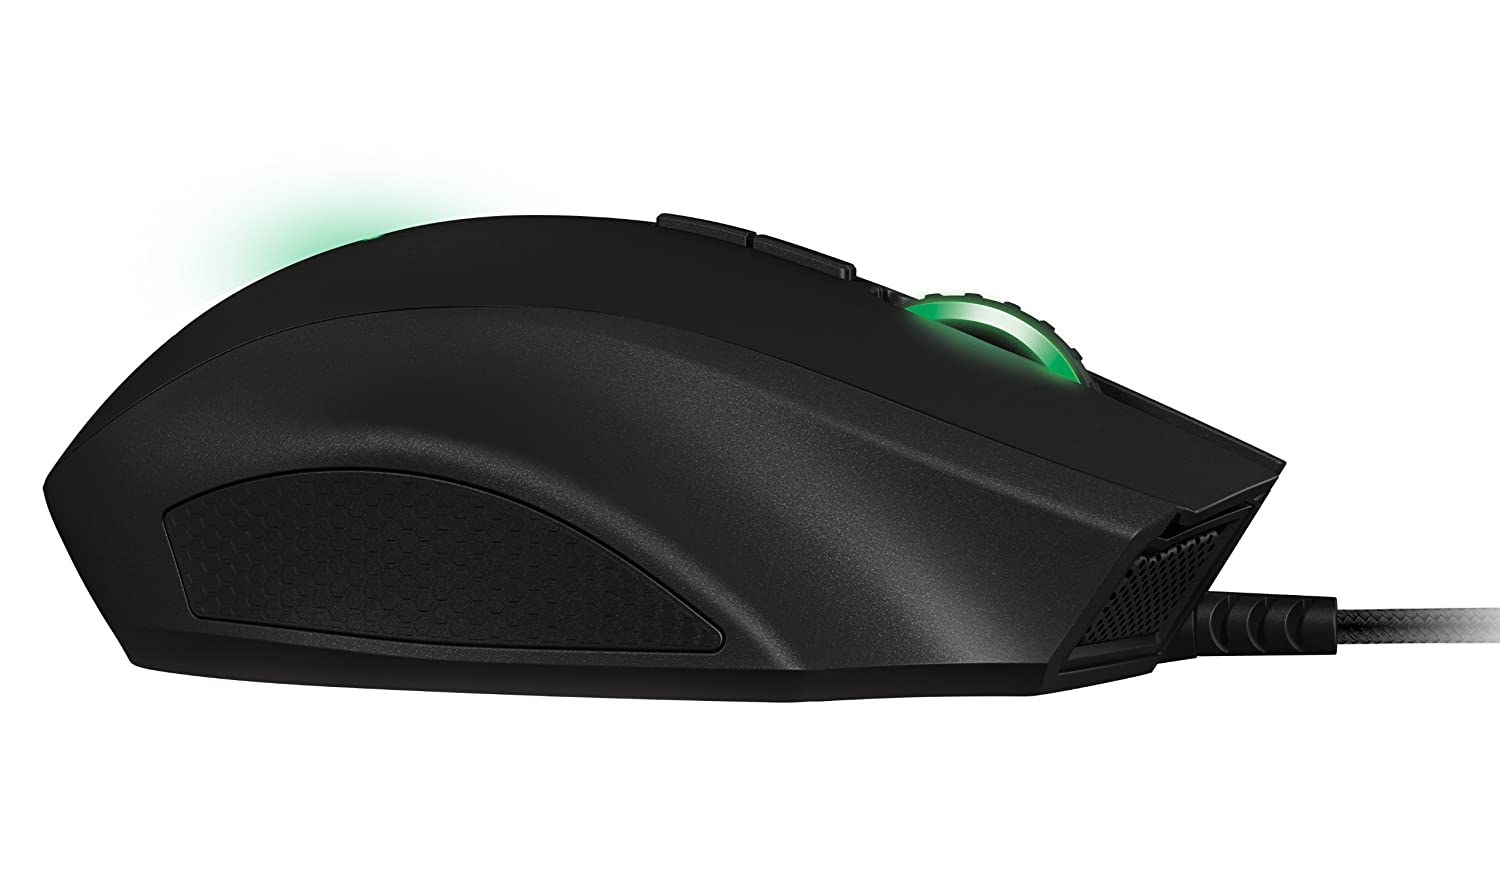 Buy Razer Naga 2014 Expert Mmo Gaming Mouse Ap Mousepad Speed 300x250 Mm Packaging Rz01 01040100 R3a1 Online At Low Prices In India Reviews Ratings